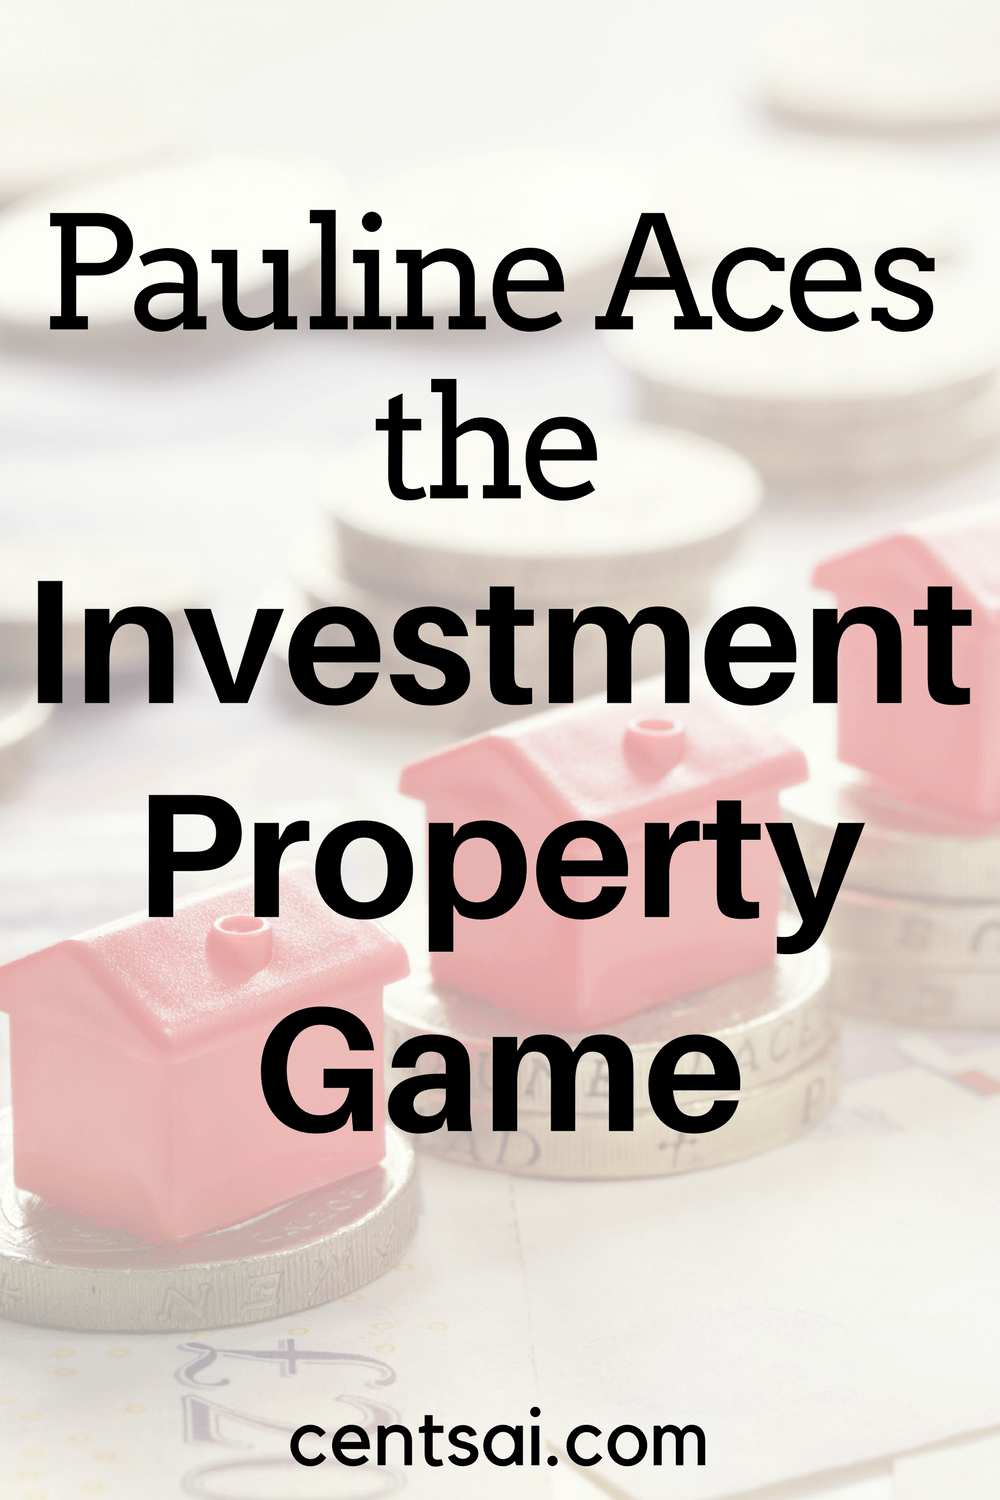 Pauline Aces the Investment Property Game. Renting out rooms in your house or apartment can help you cover the mortgage with ease – it's almost like getting the place for free!